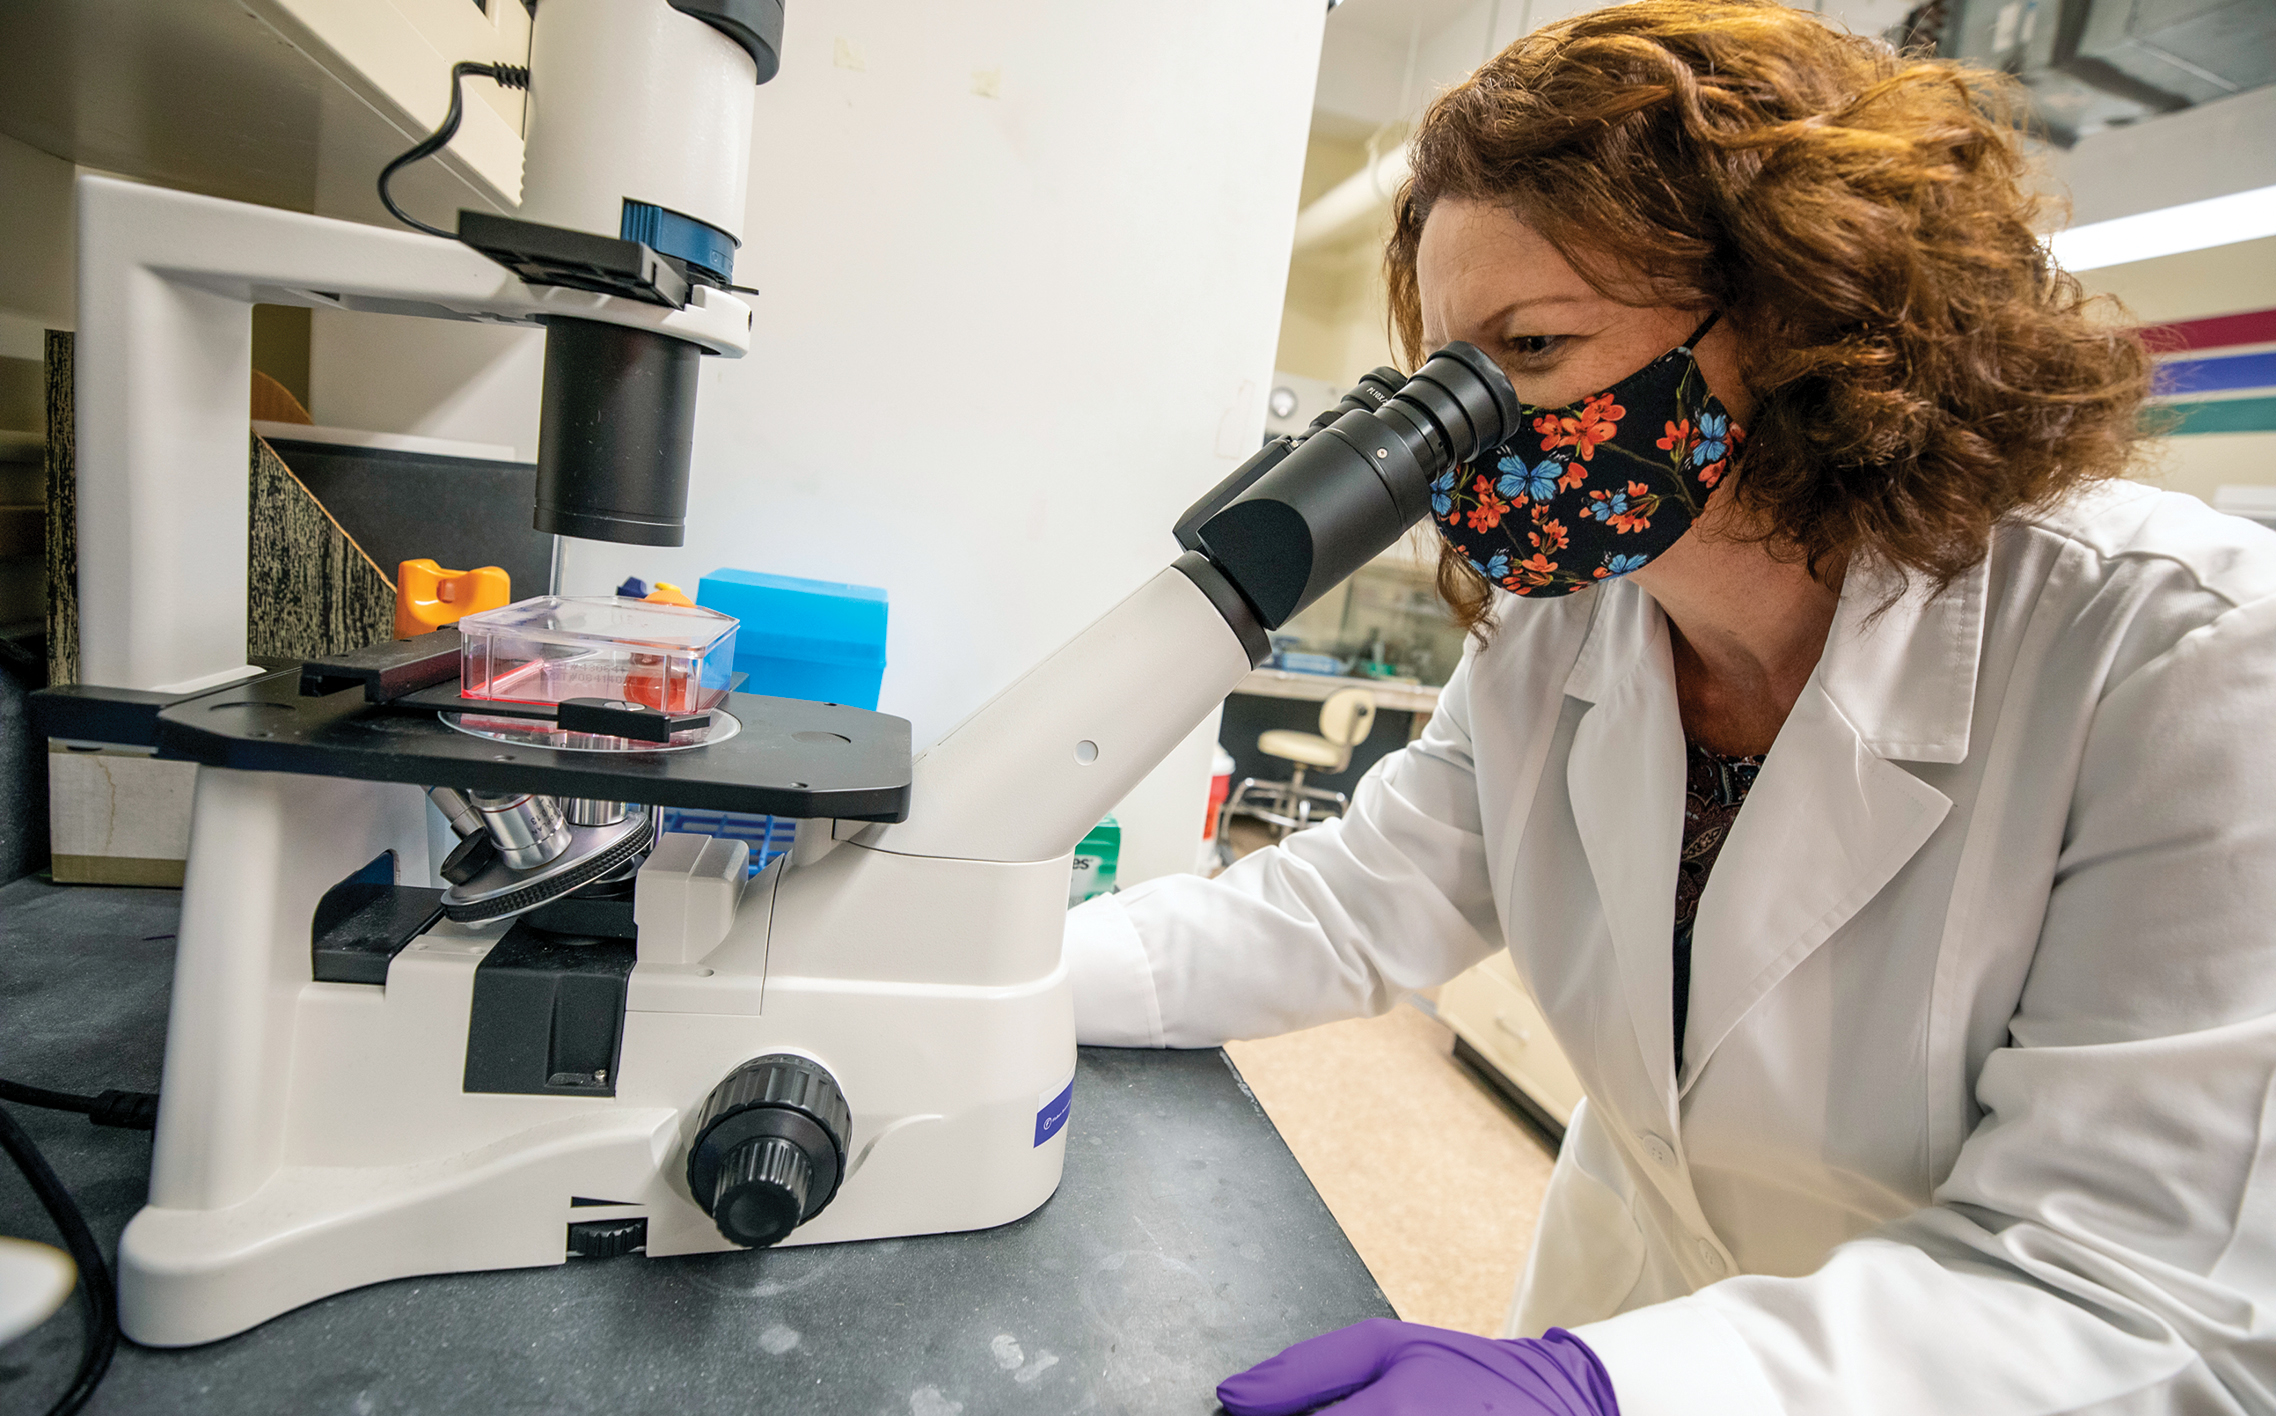 Julia Sharp looks through a microscope while working in her research lab. She is wearing a face mask and gloves.